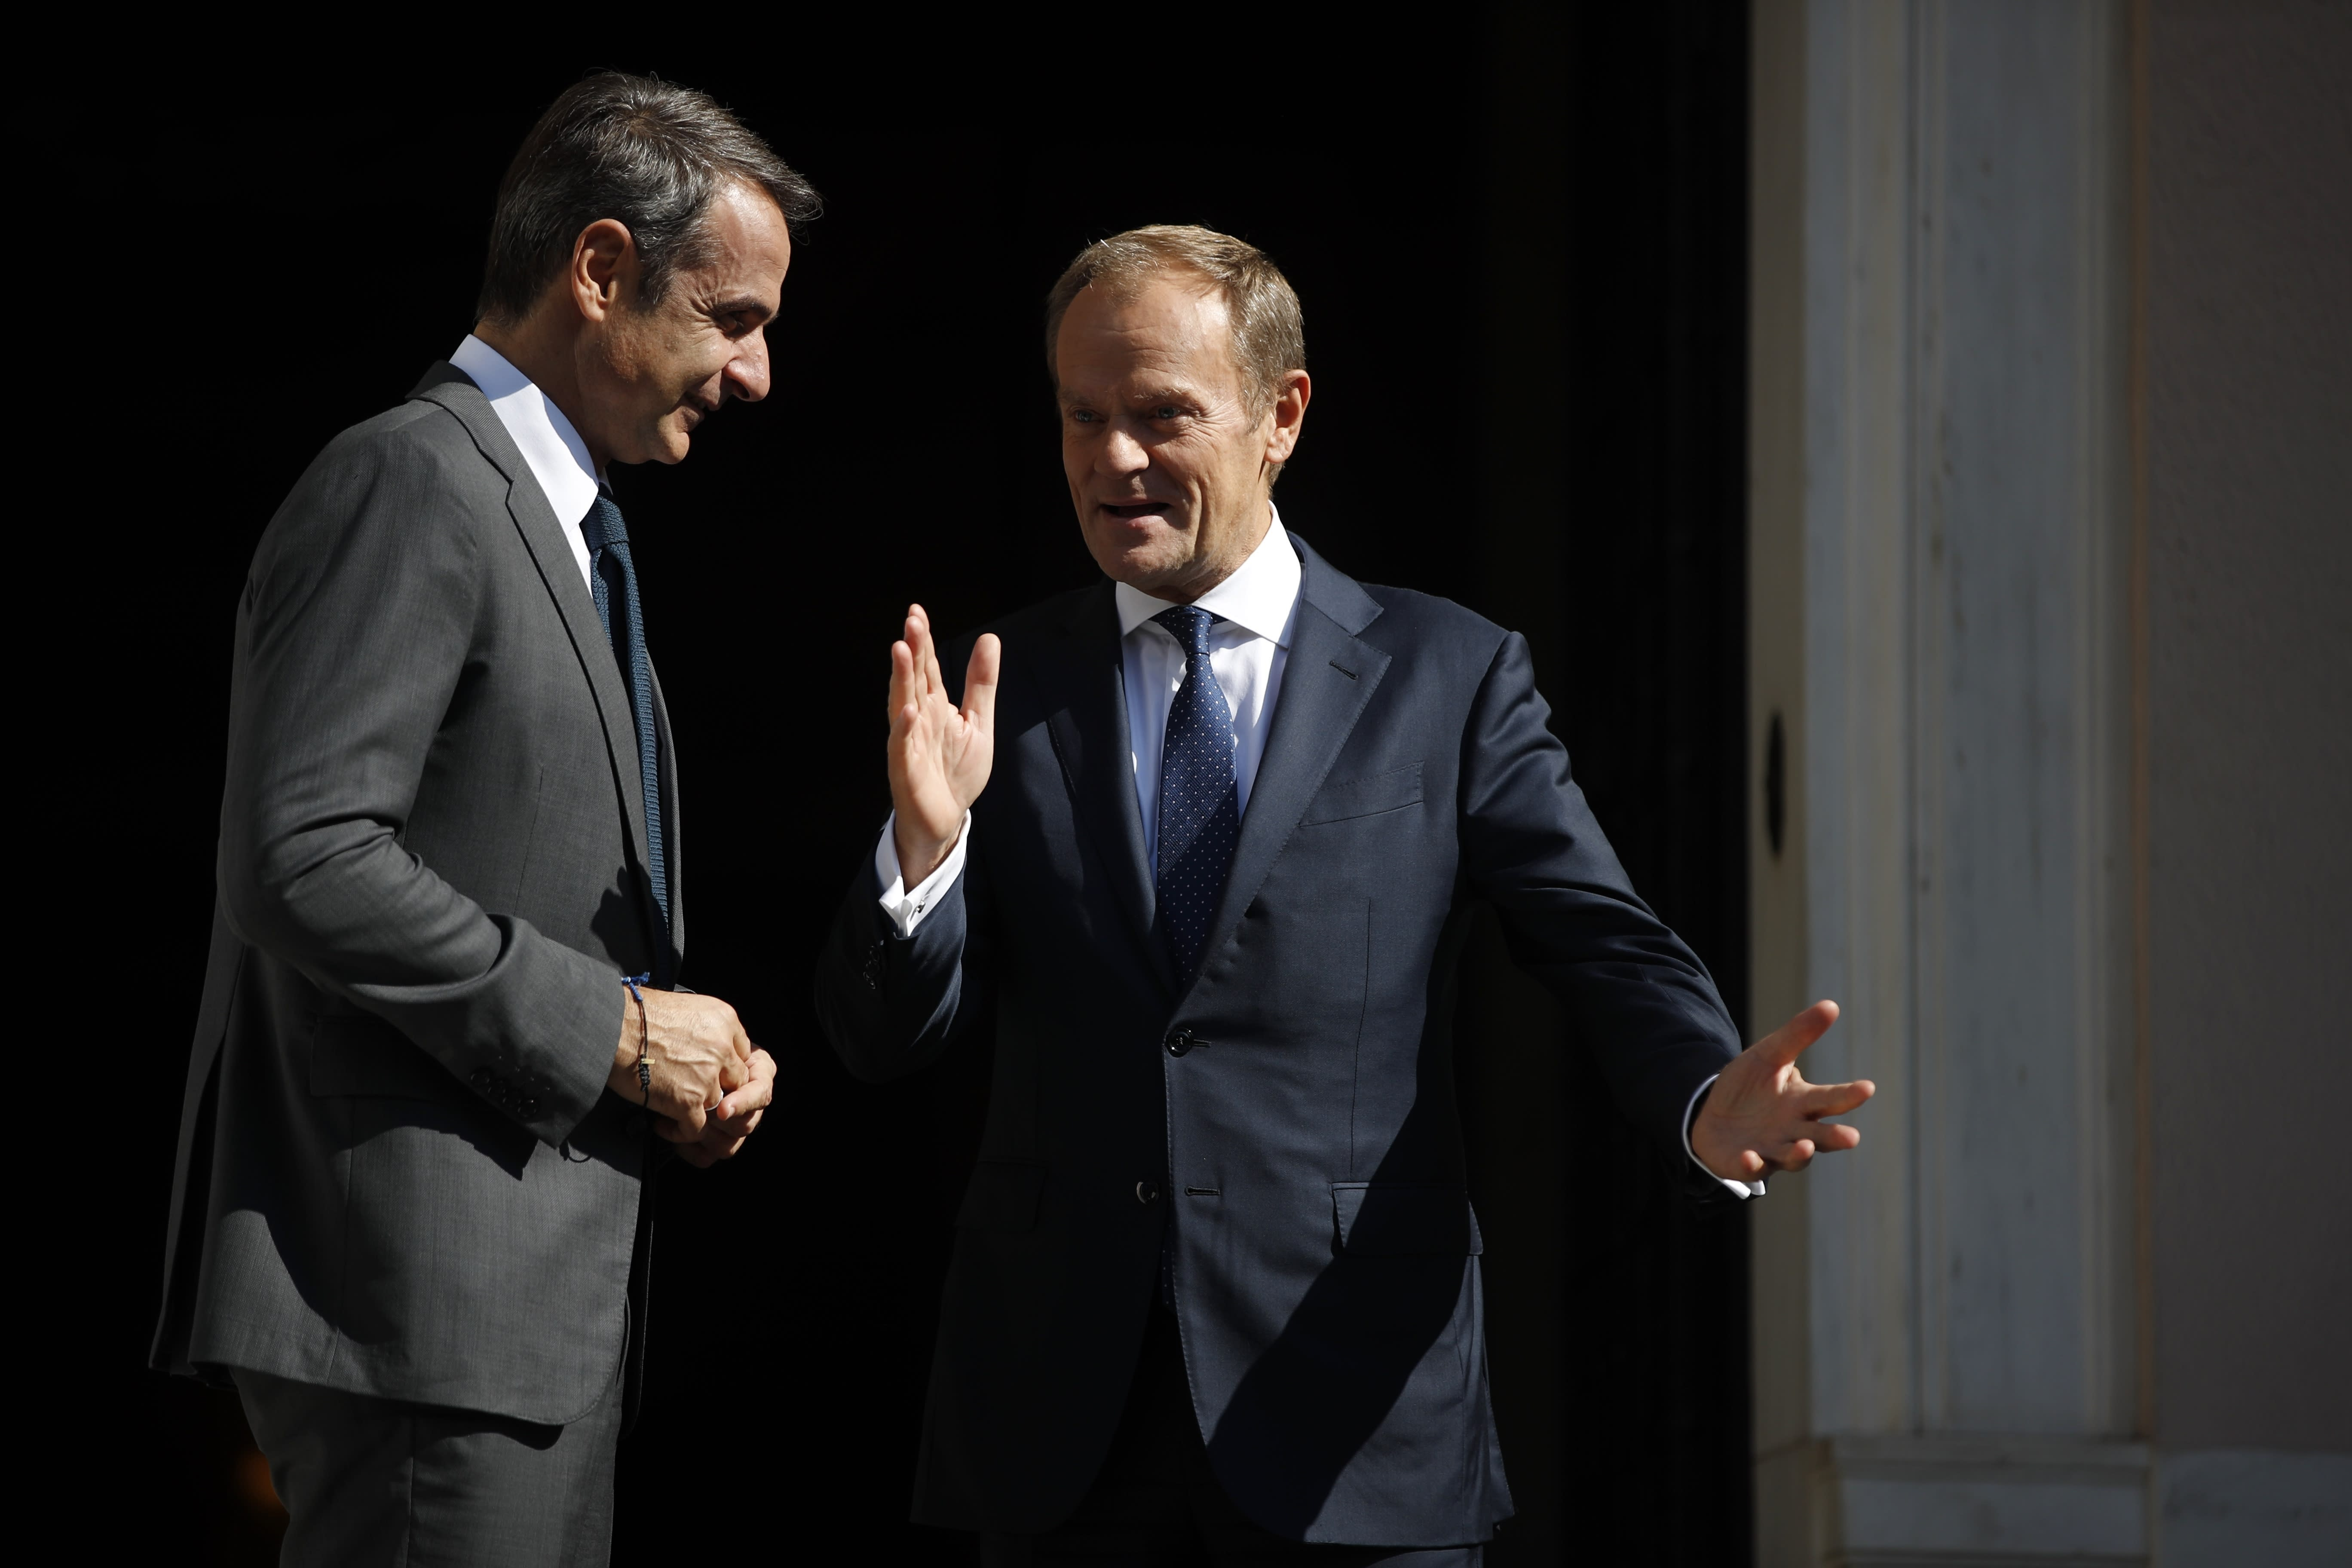 """European Council President Donald Tusk, right, speaks with Greece's Prime Minister Kyriakos Mitsotakis during their metering at Maximos Mansion in Athens, Wednesday, Oct. 9, 2019. EU leaders have demanded more """"realism"""" from Britain in response to a Brexit plan proposed by British Prime Minister Boris Johnson. (AP Photo/Thanassis Stavrakis)"""